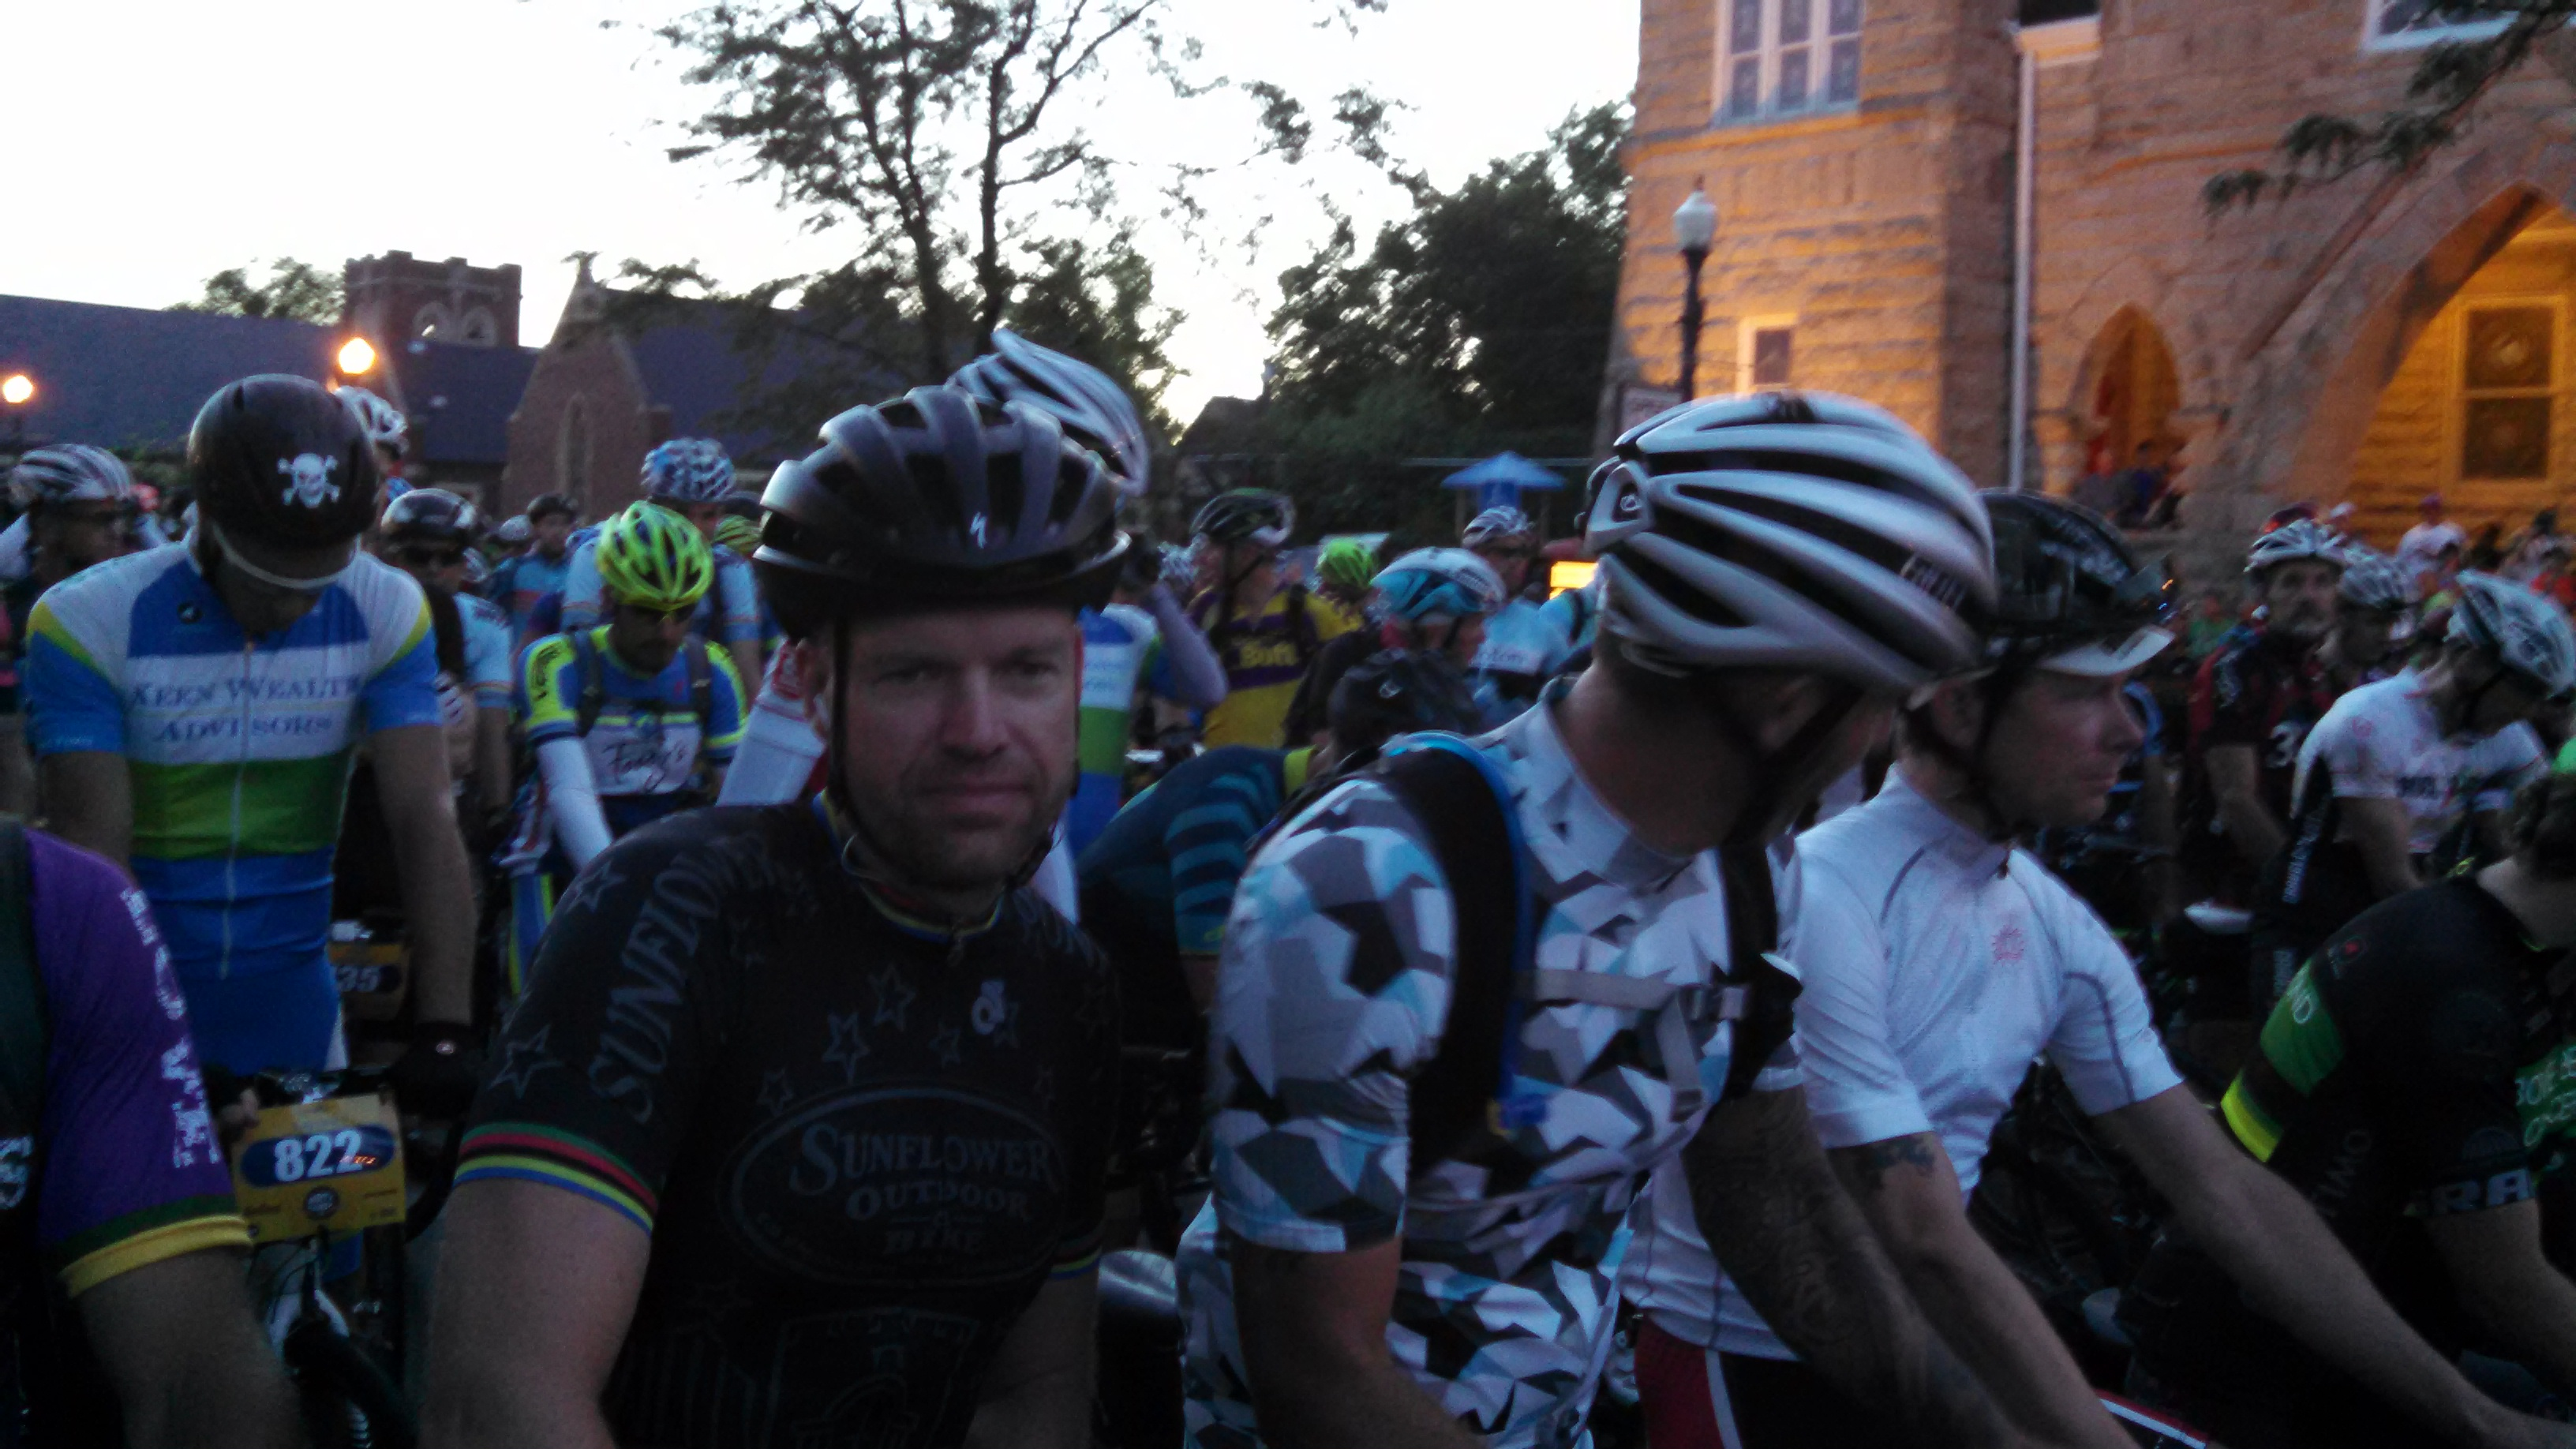 Lawrence resident Dan Hughes, in black, one of the Dirty Kanza riders. (Photo by Greg Echlin)